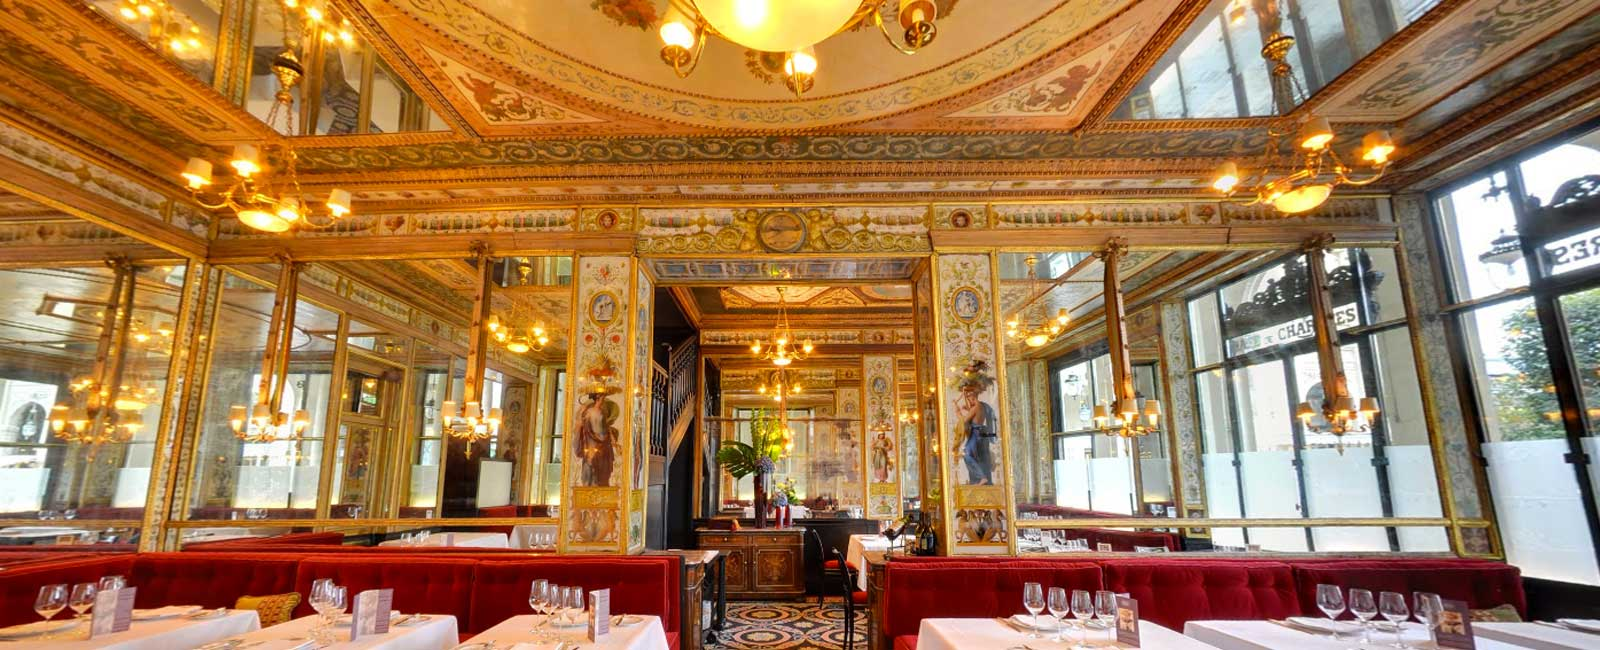 Le grand v four gastronomical restaurant in the heart of for Restaurant cuisine francaise paris